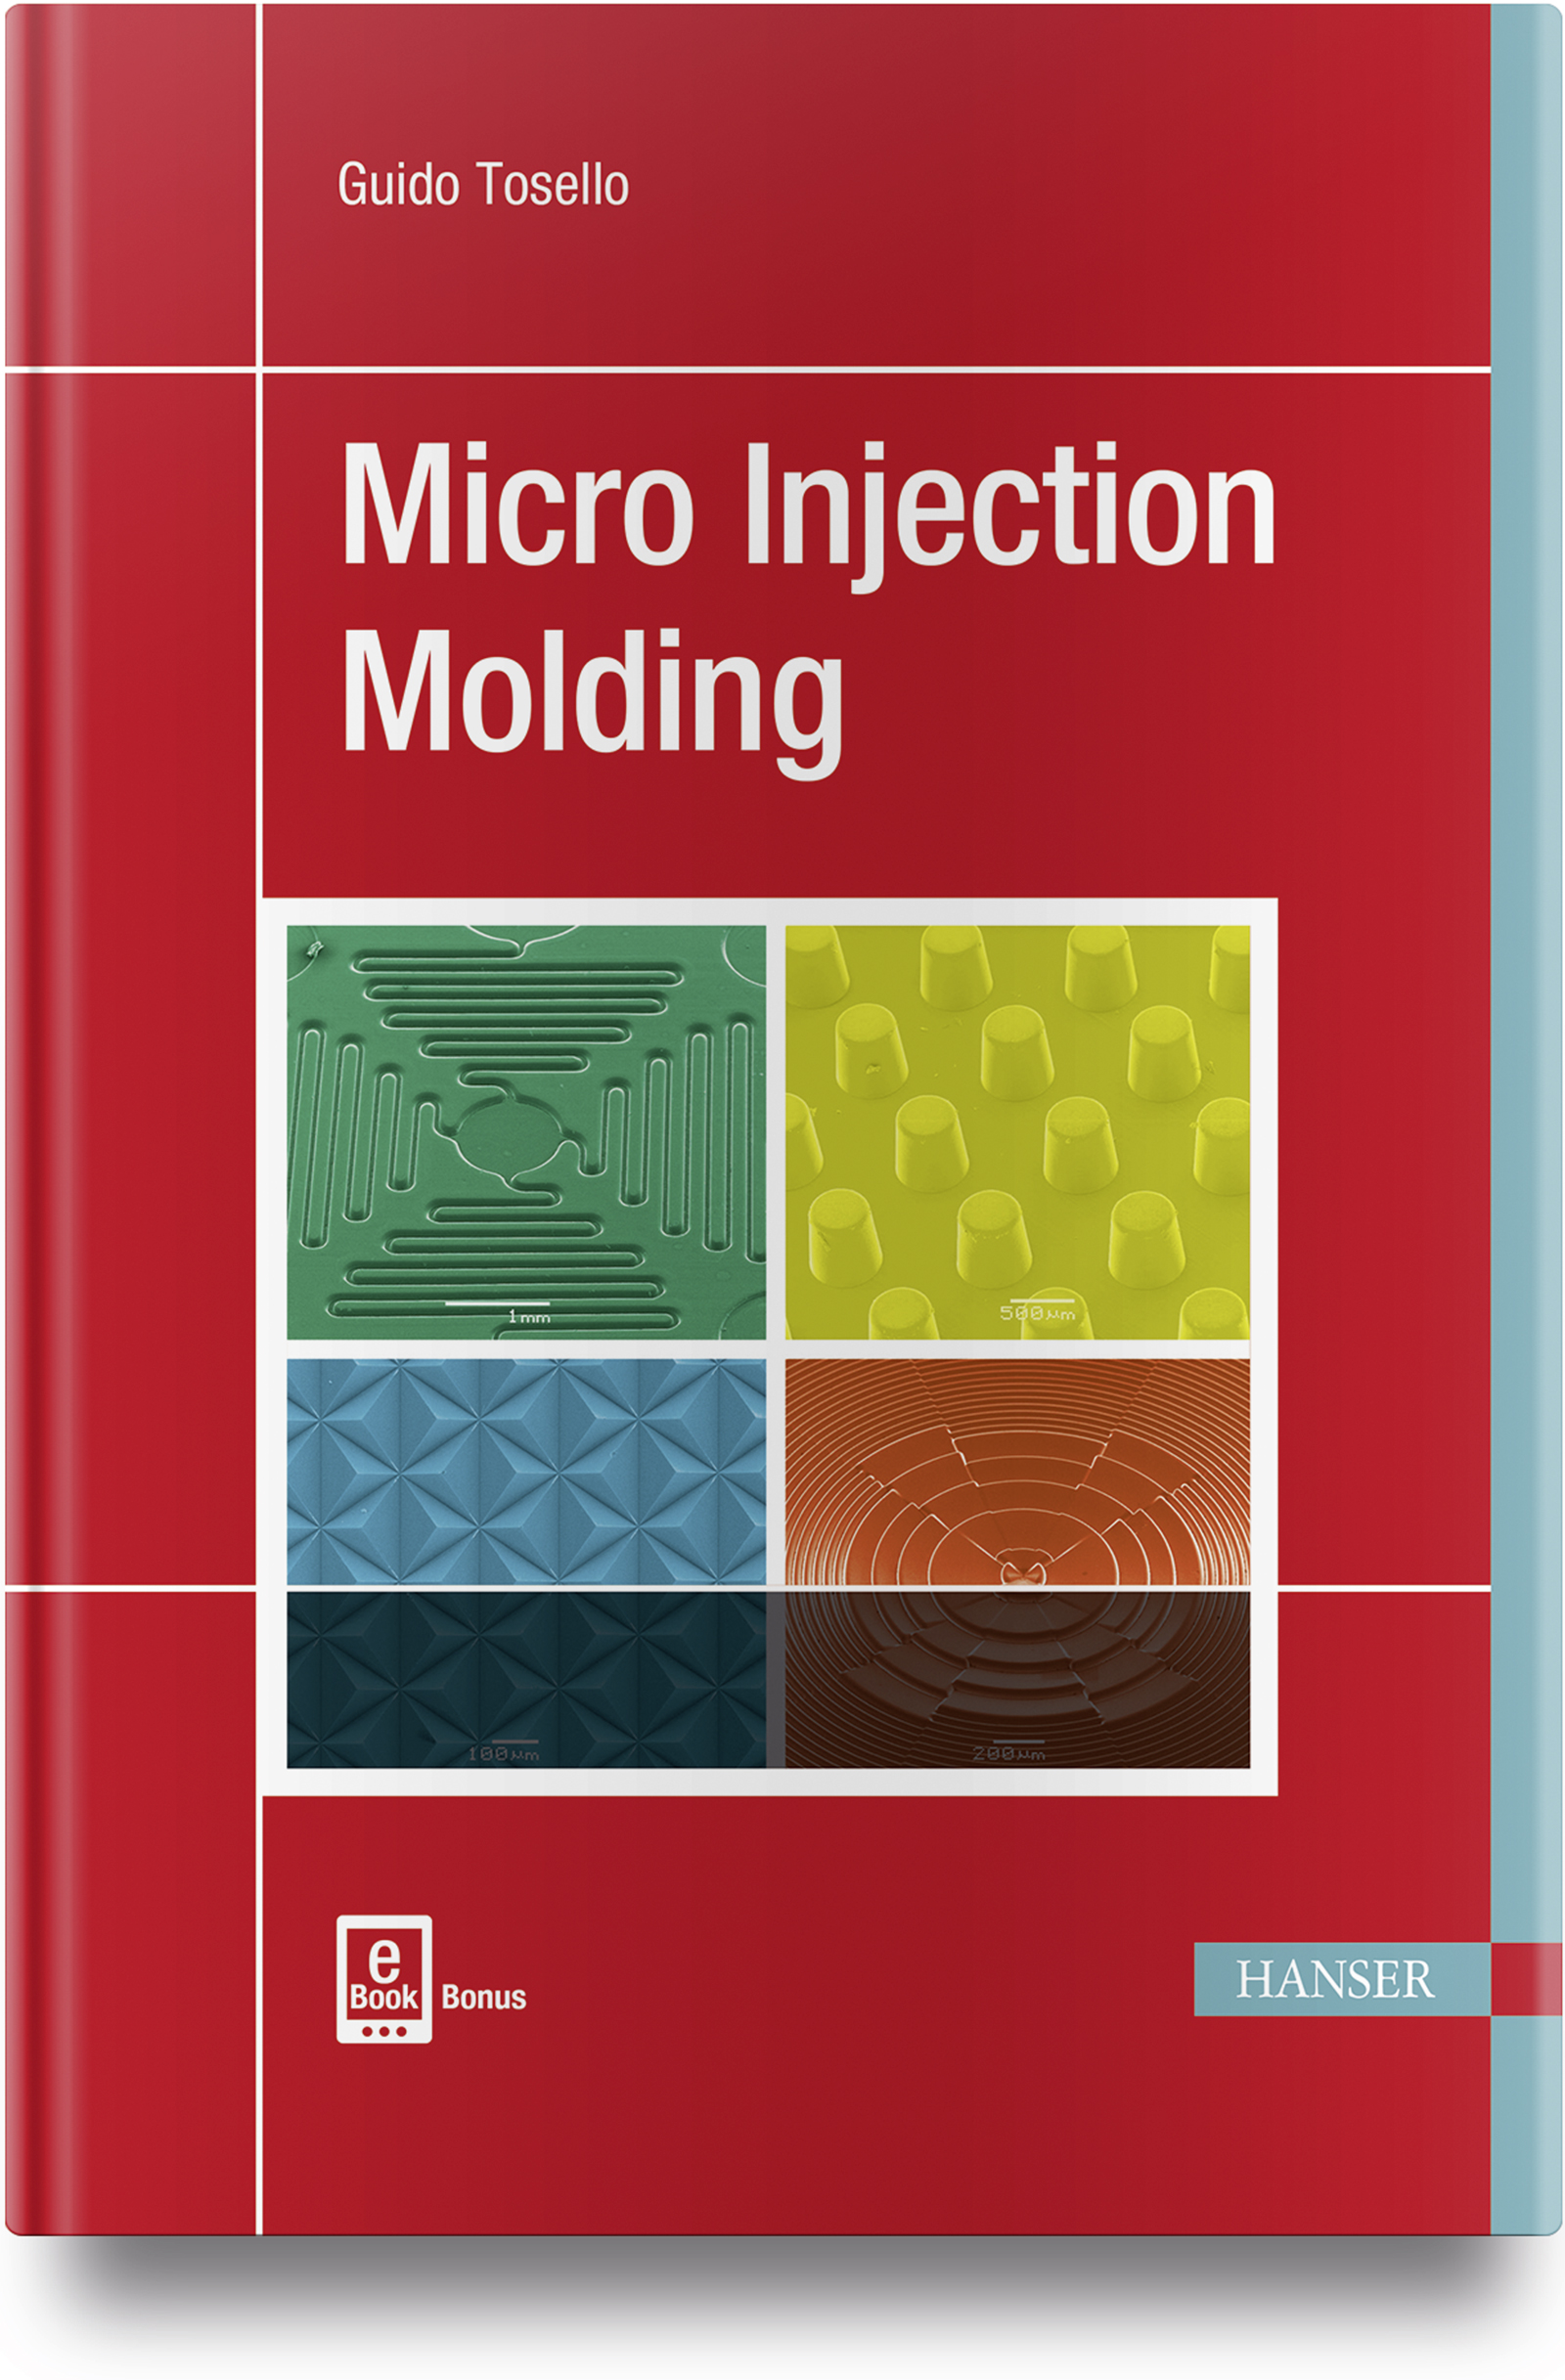 Micro Injection Molding, 978-1-56990-653-8